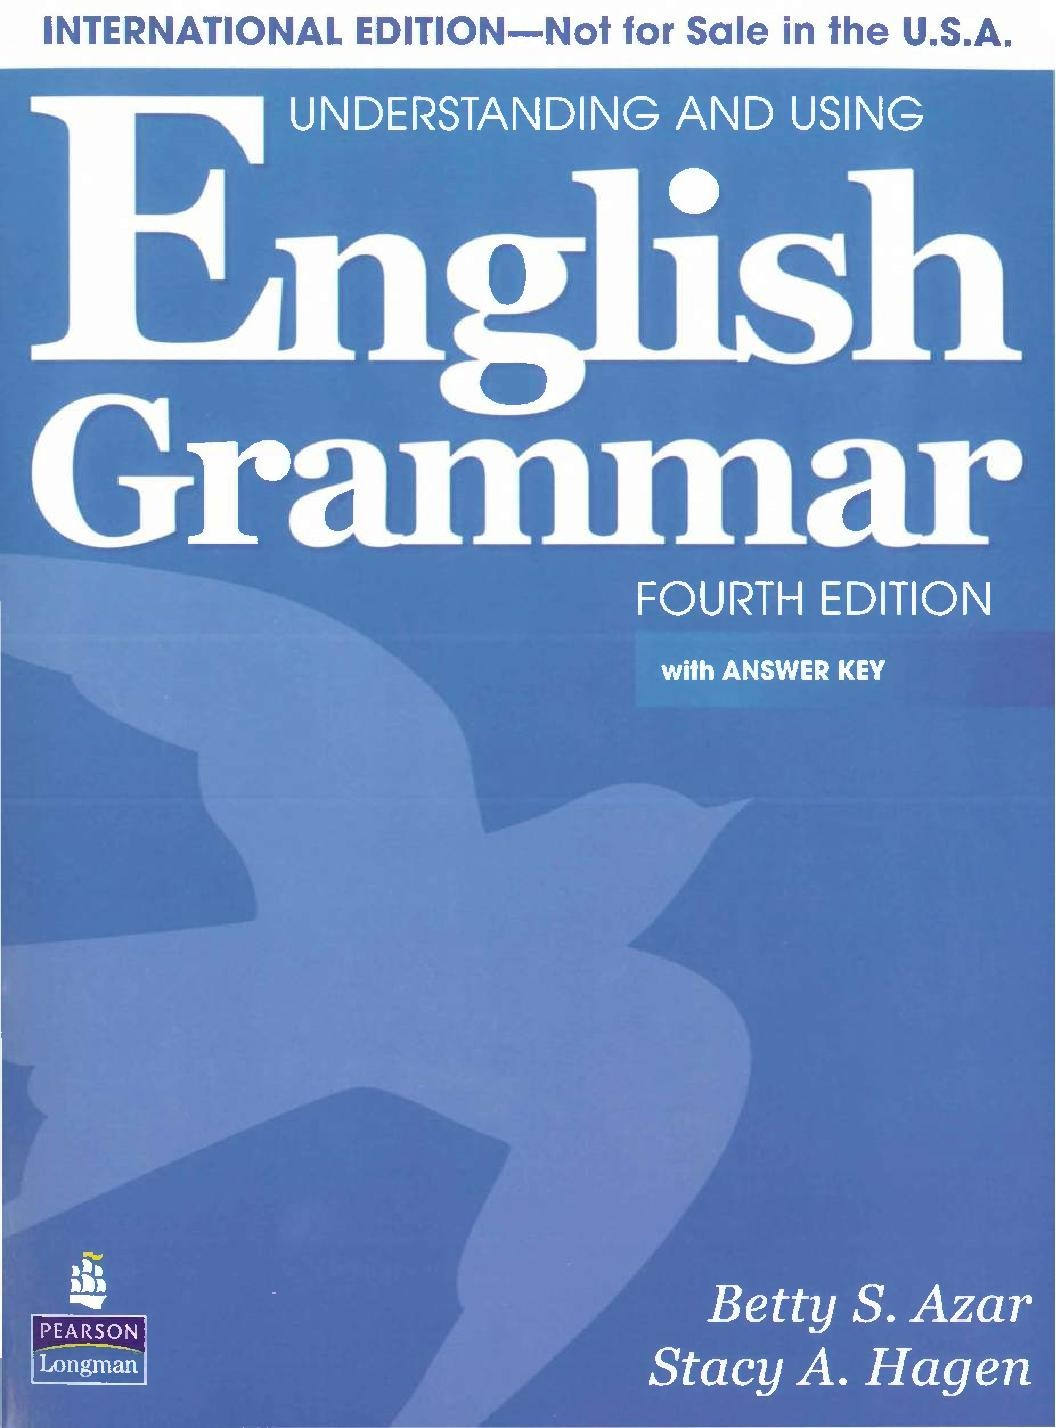 Descargar Libro English Grammar In Use Understanding And Using English Grammar With Answer Key And Audio